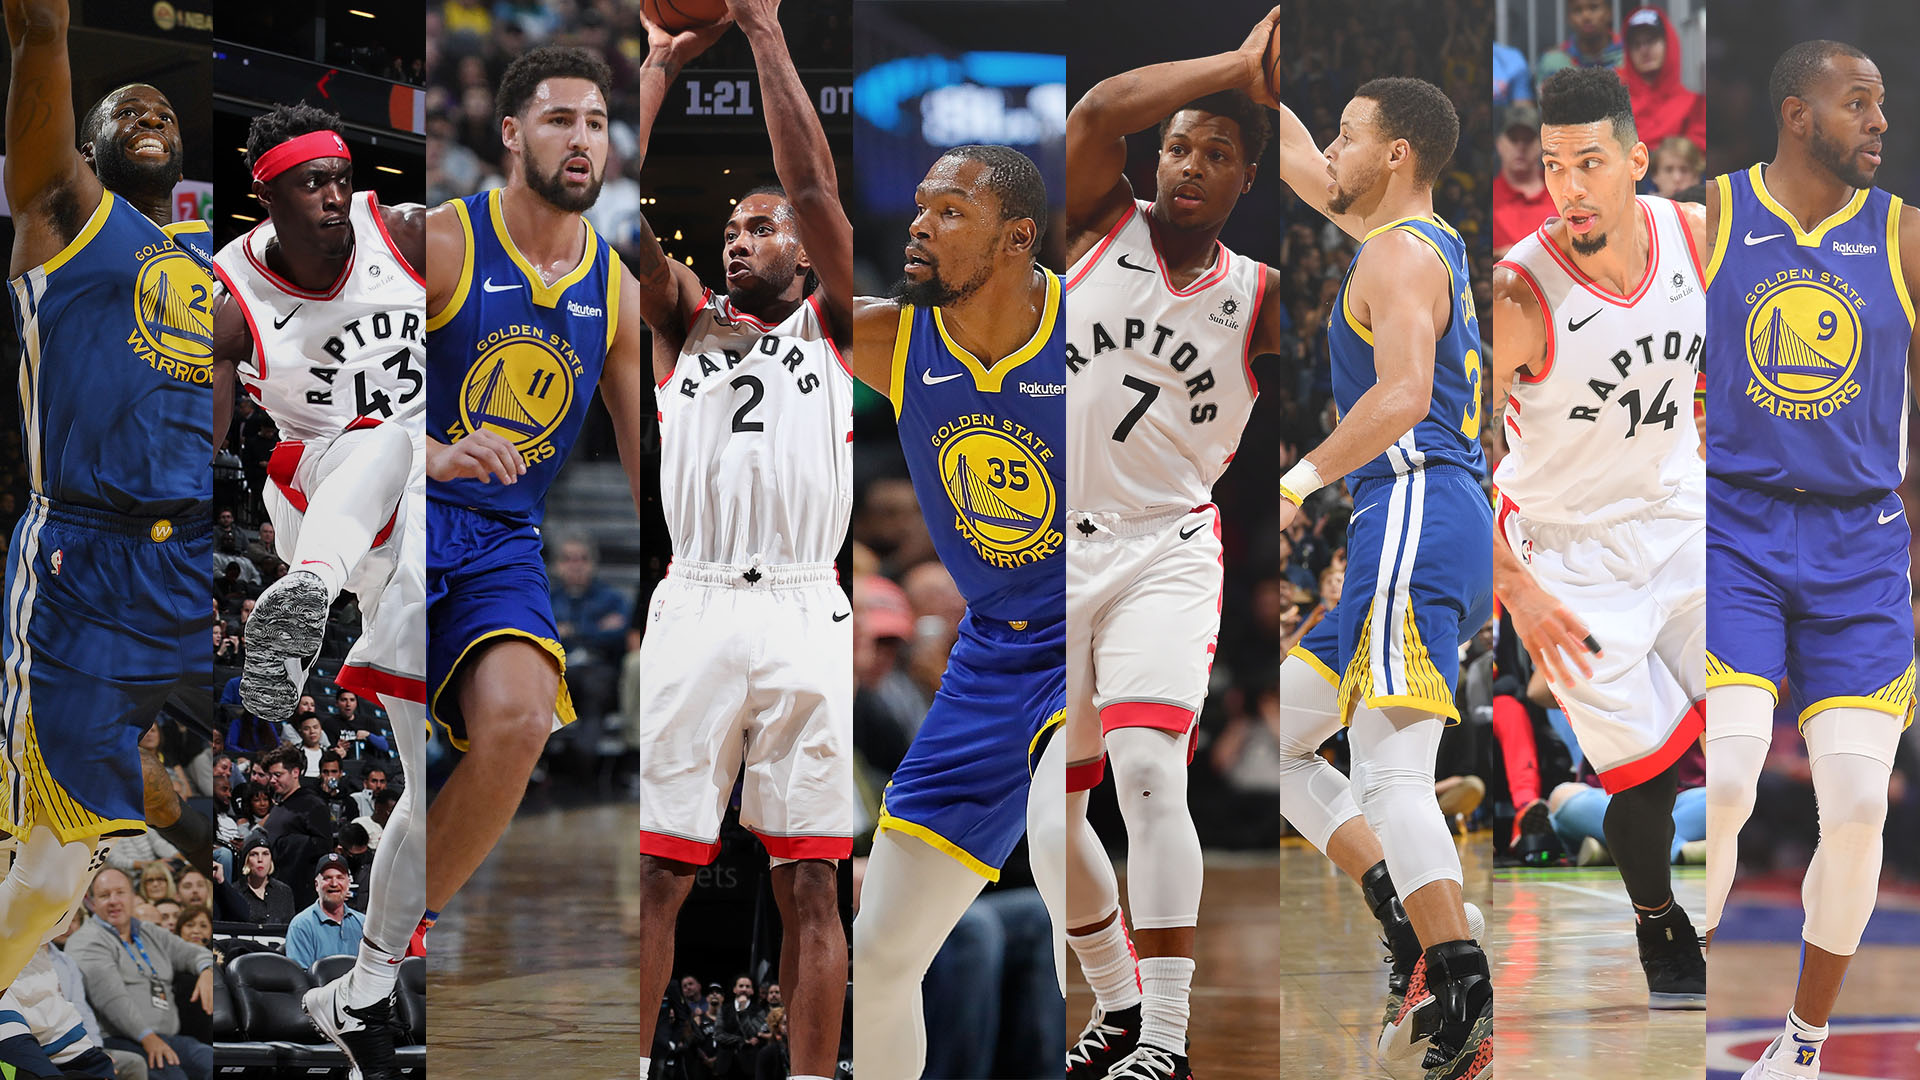 NBA Finals 2019: Ranking every player on the Toronto Raptors and Golden State Warriors | NBA.com